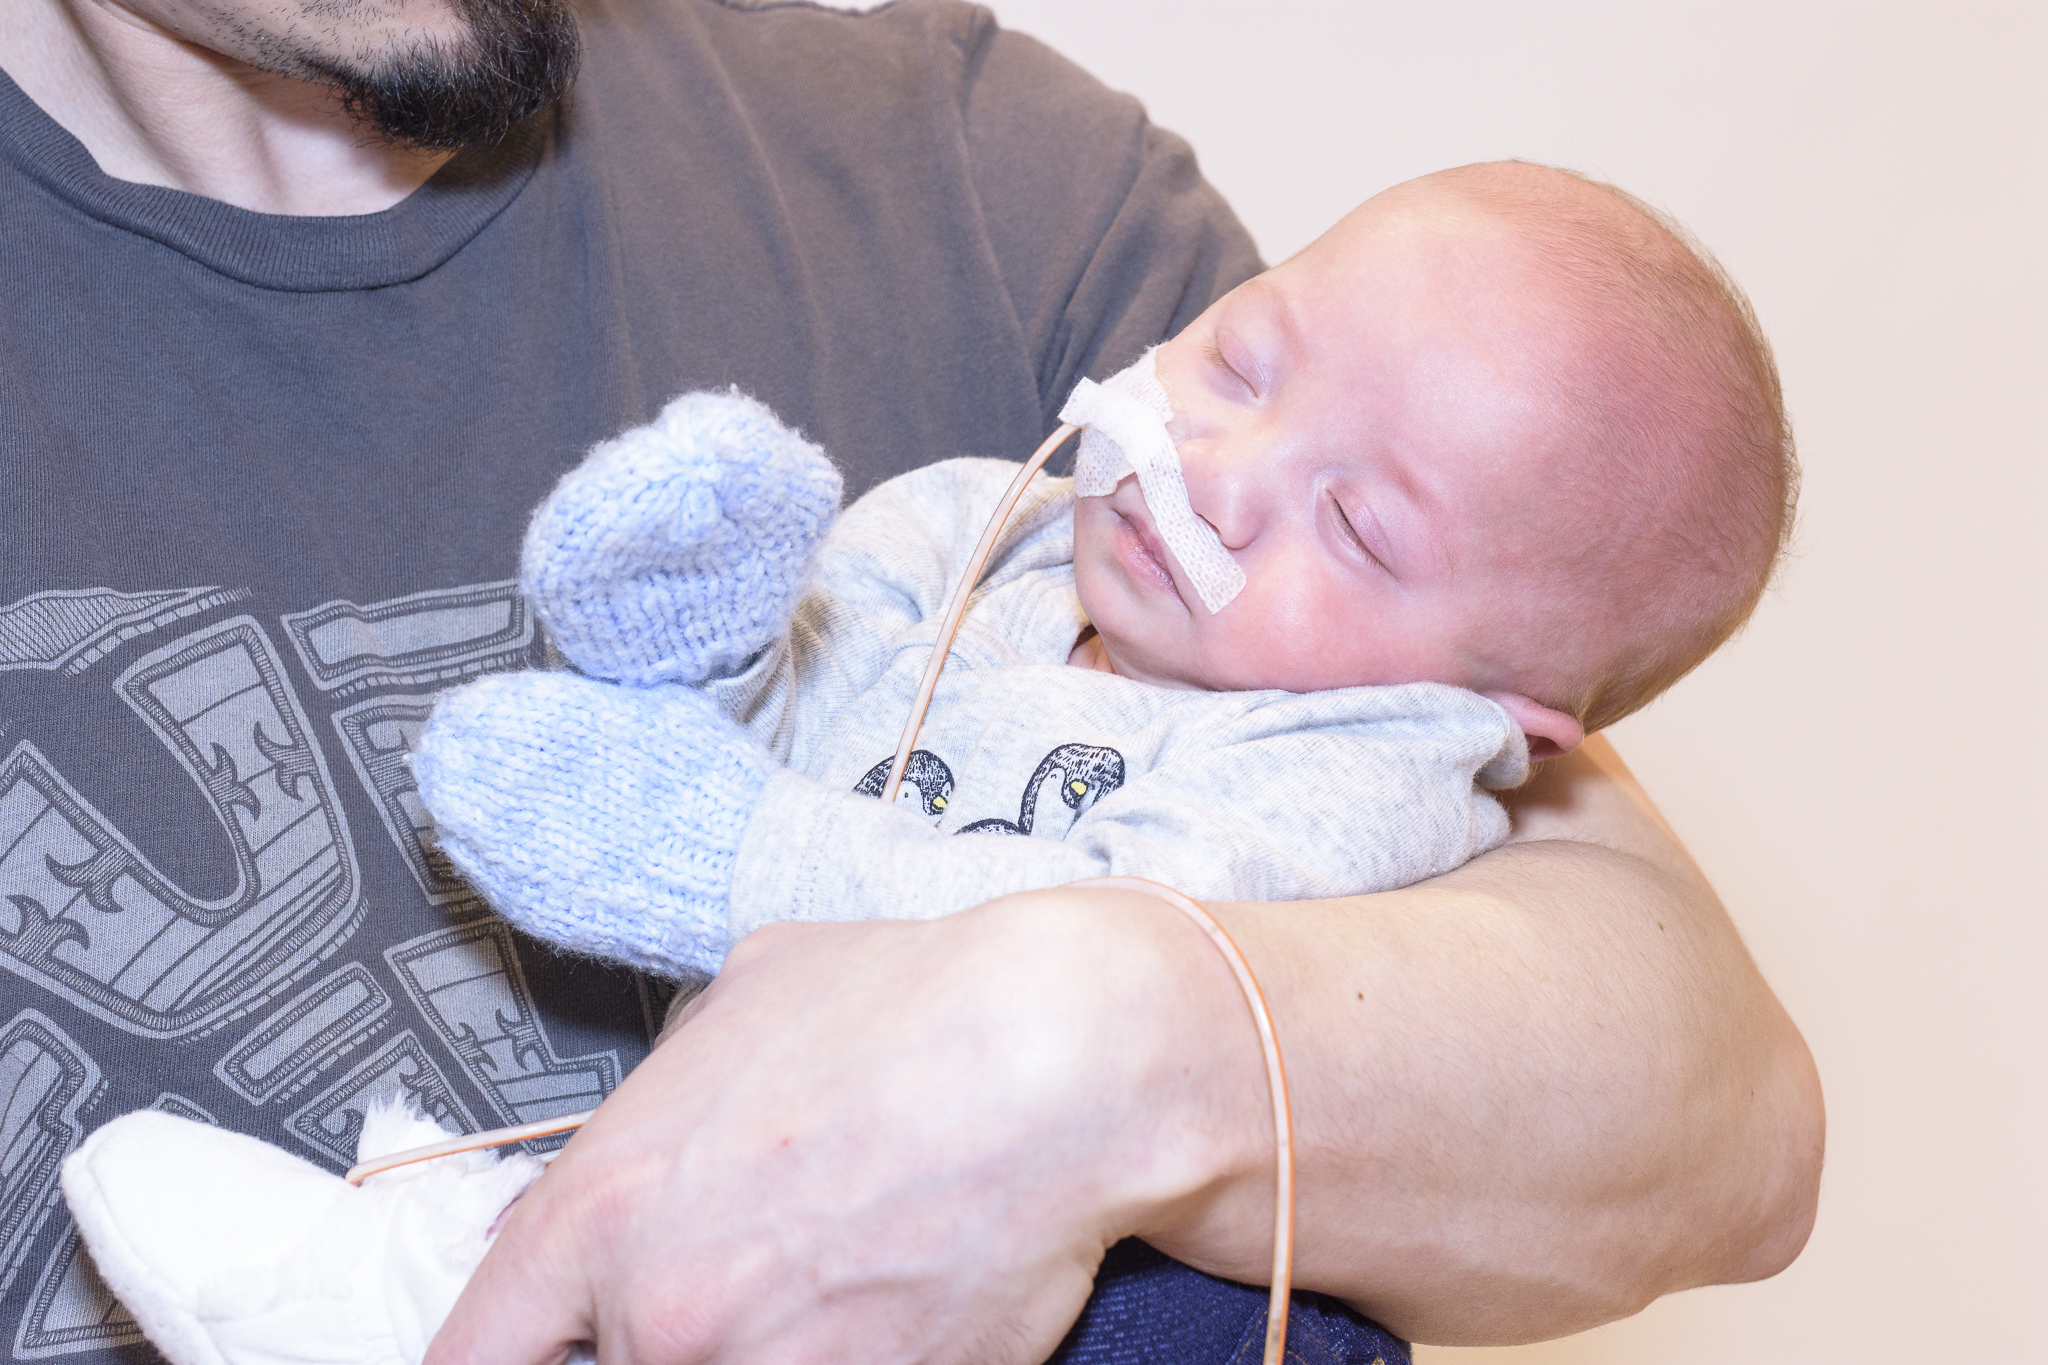 Luke was lucky to have Regina's NICU in his corner